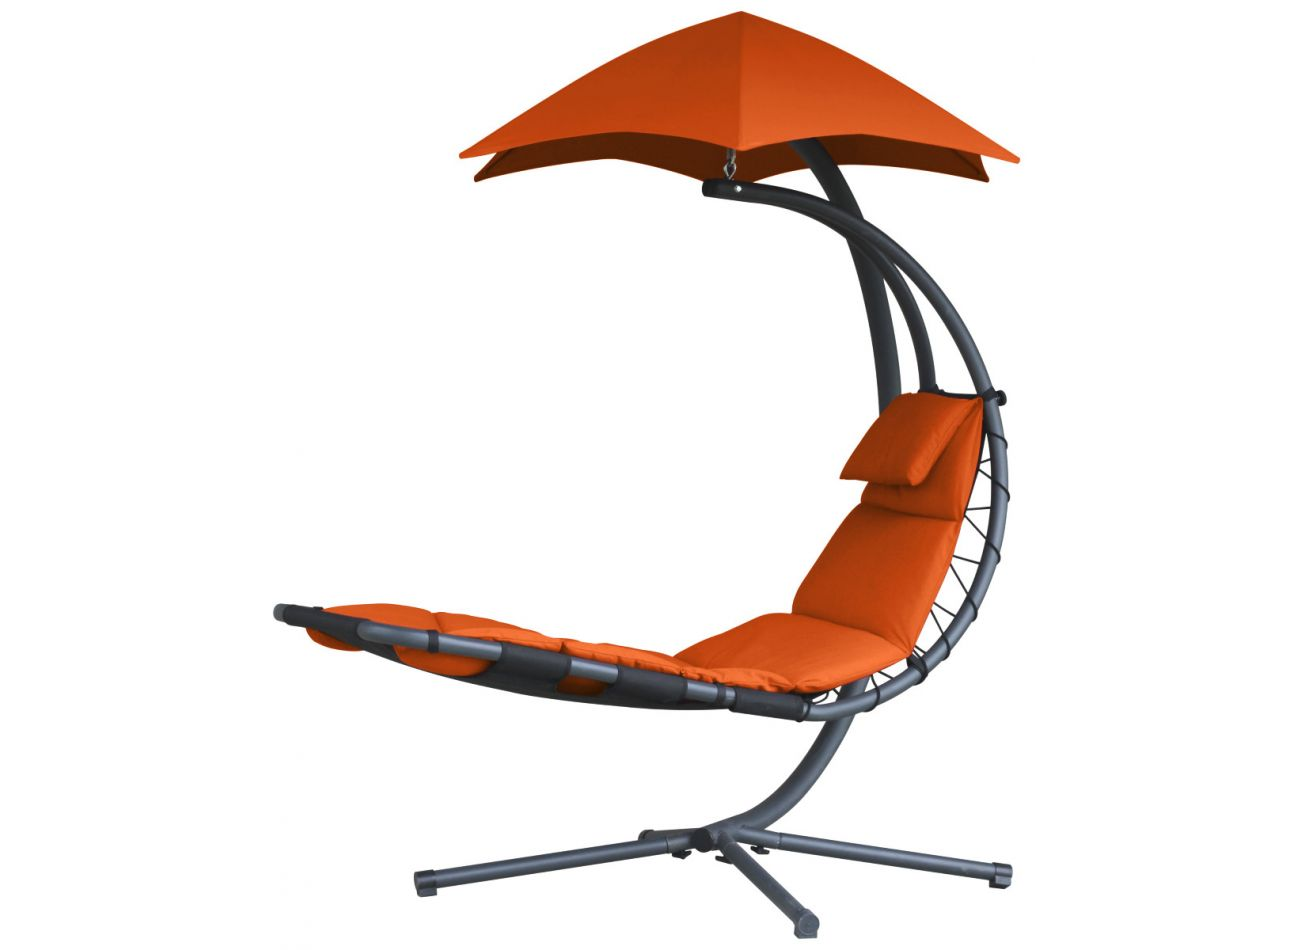 Original 1 Persoons Dream Chair Orange